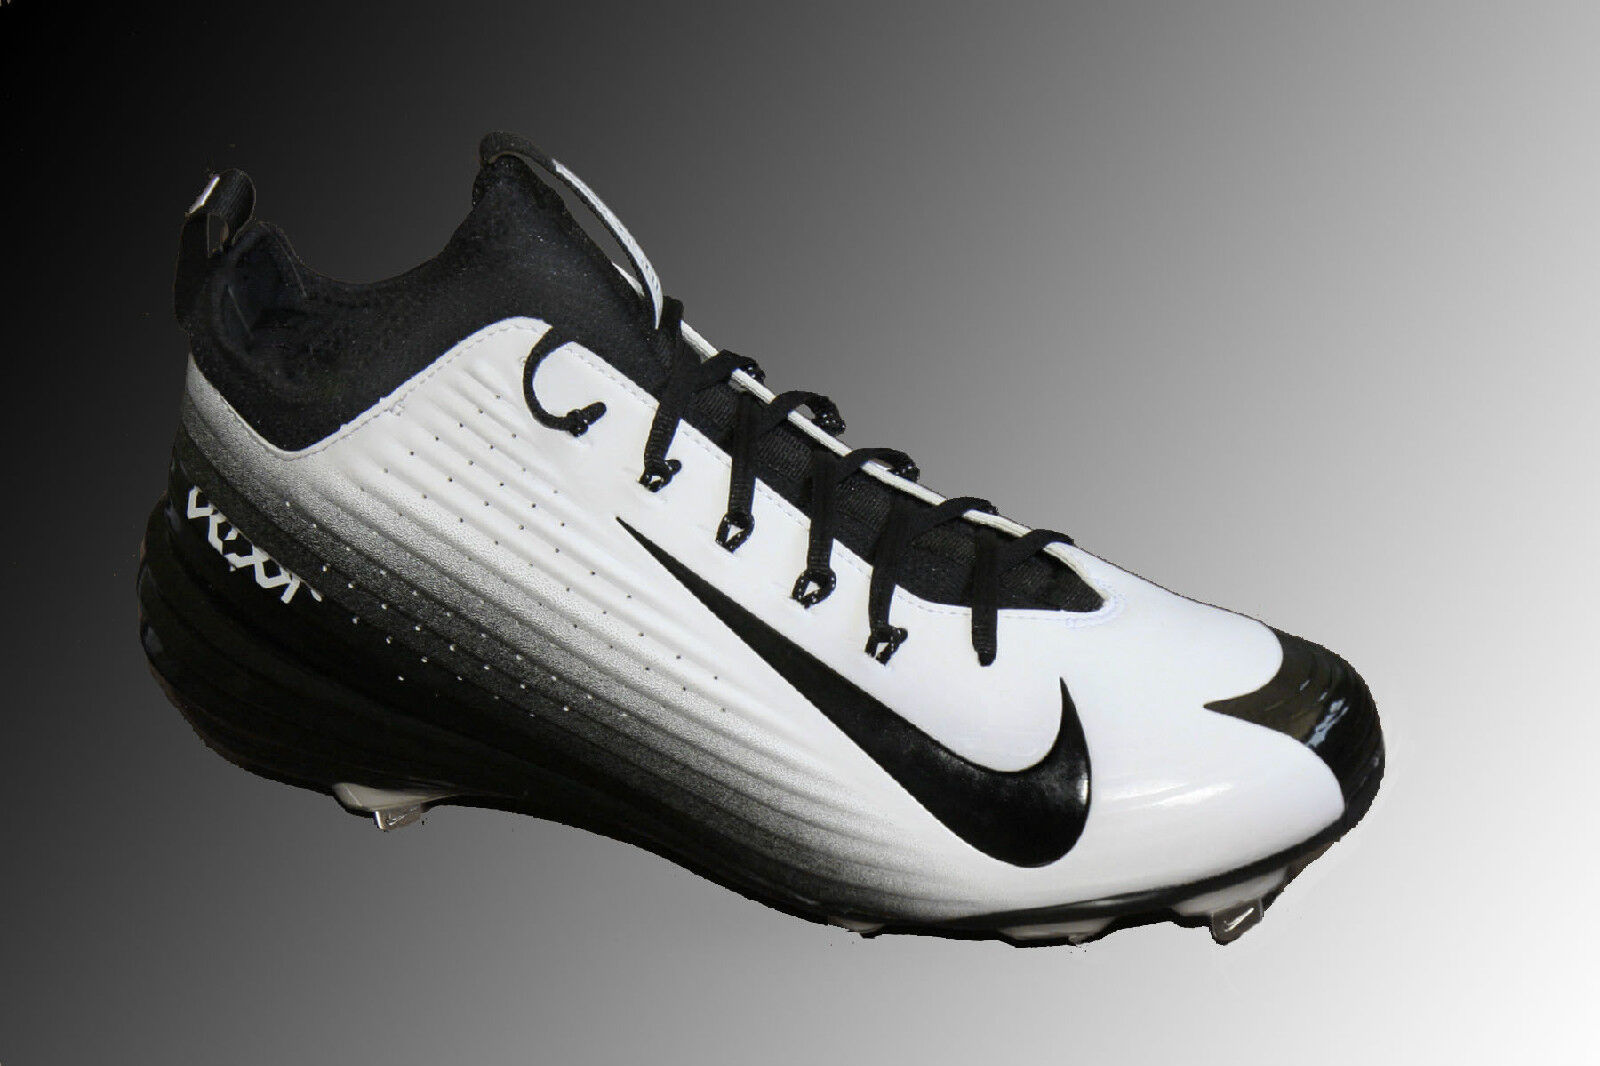 73bd93e042b Nike Men s Lunar Vapor 654853 Trout Metal Size 13 Baseball Cleats 654853  Vapor 100 cfff67